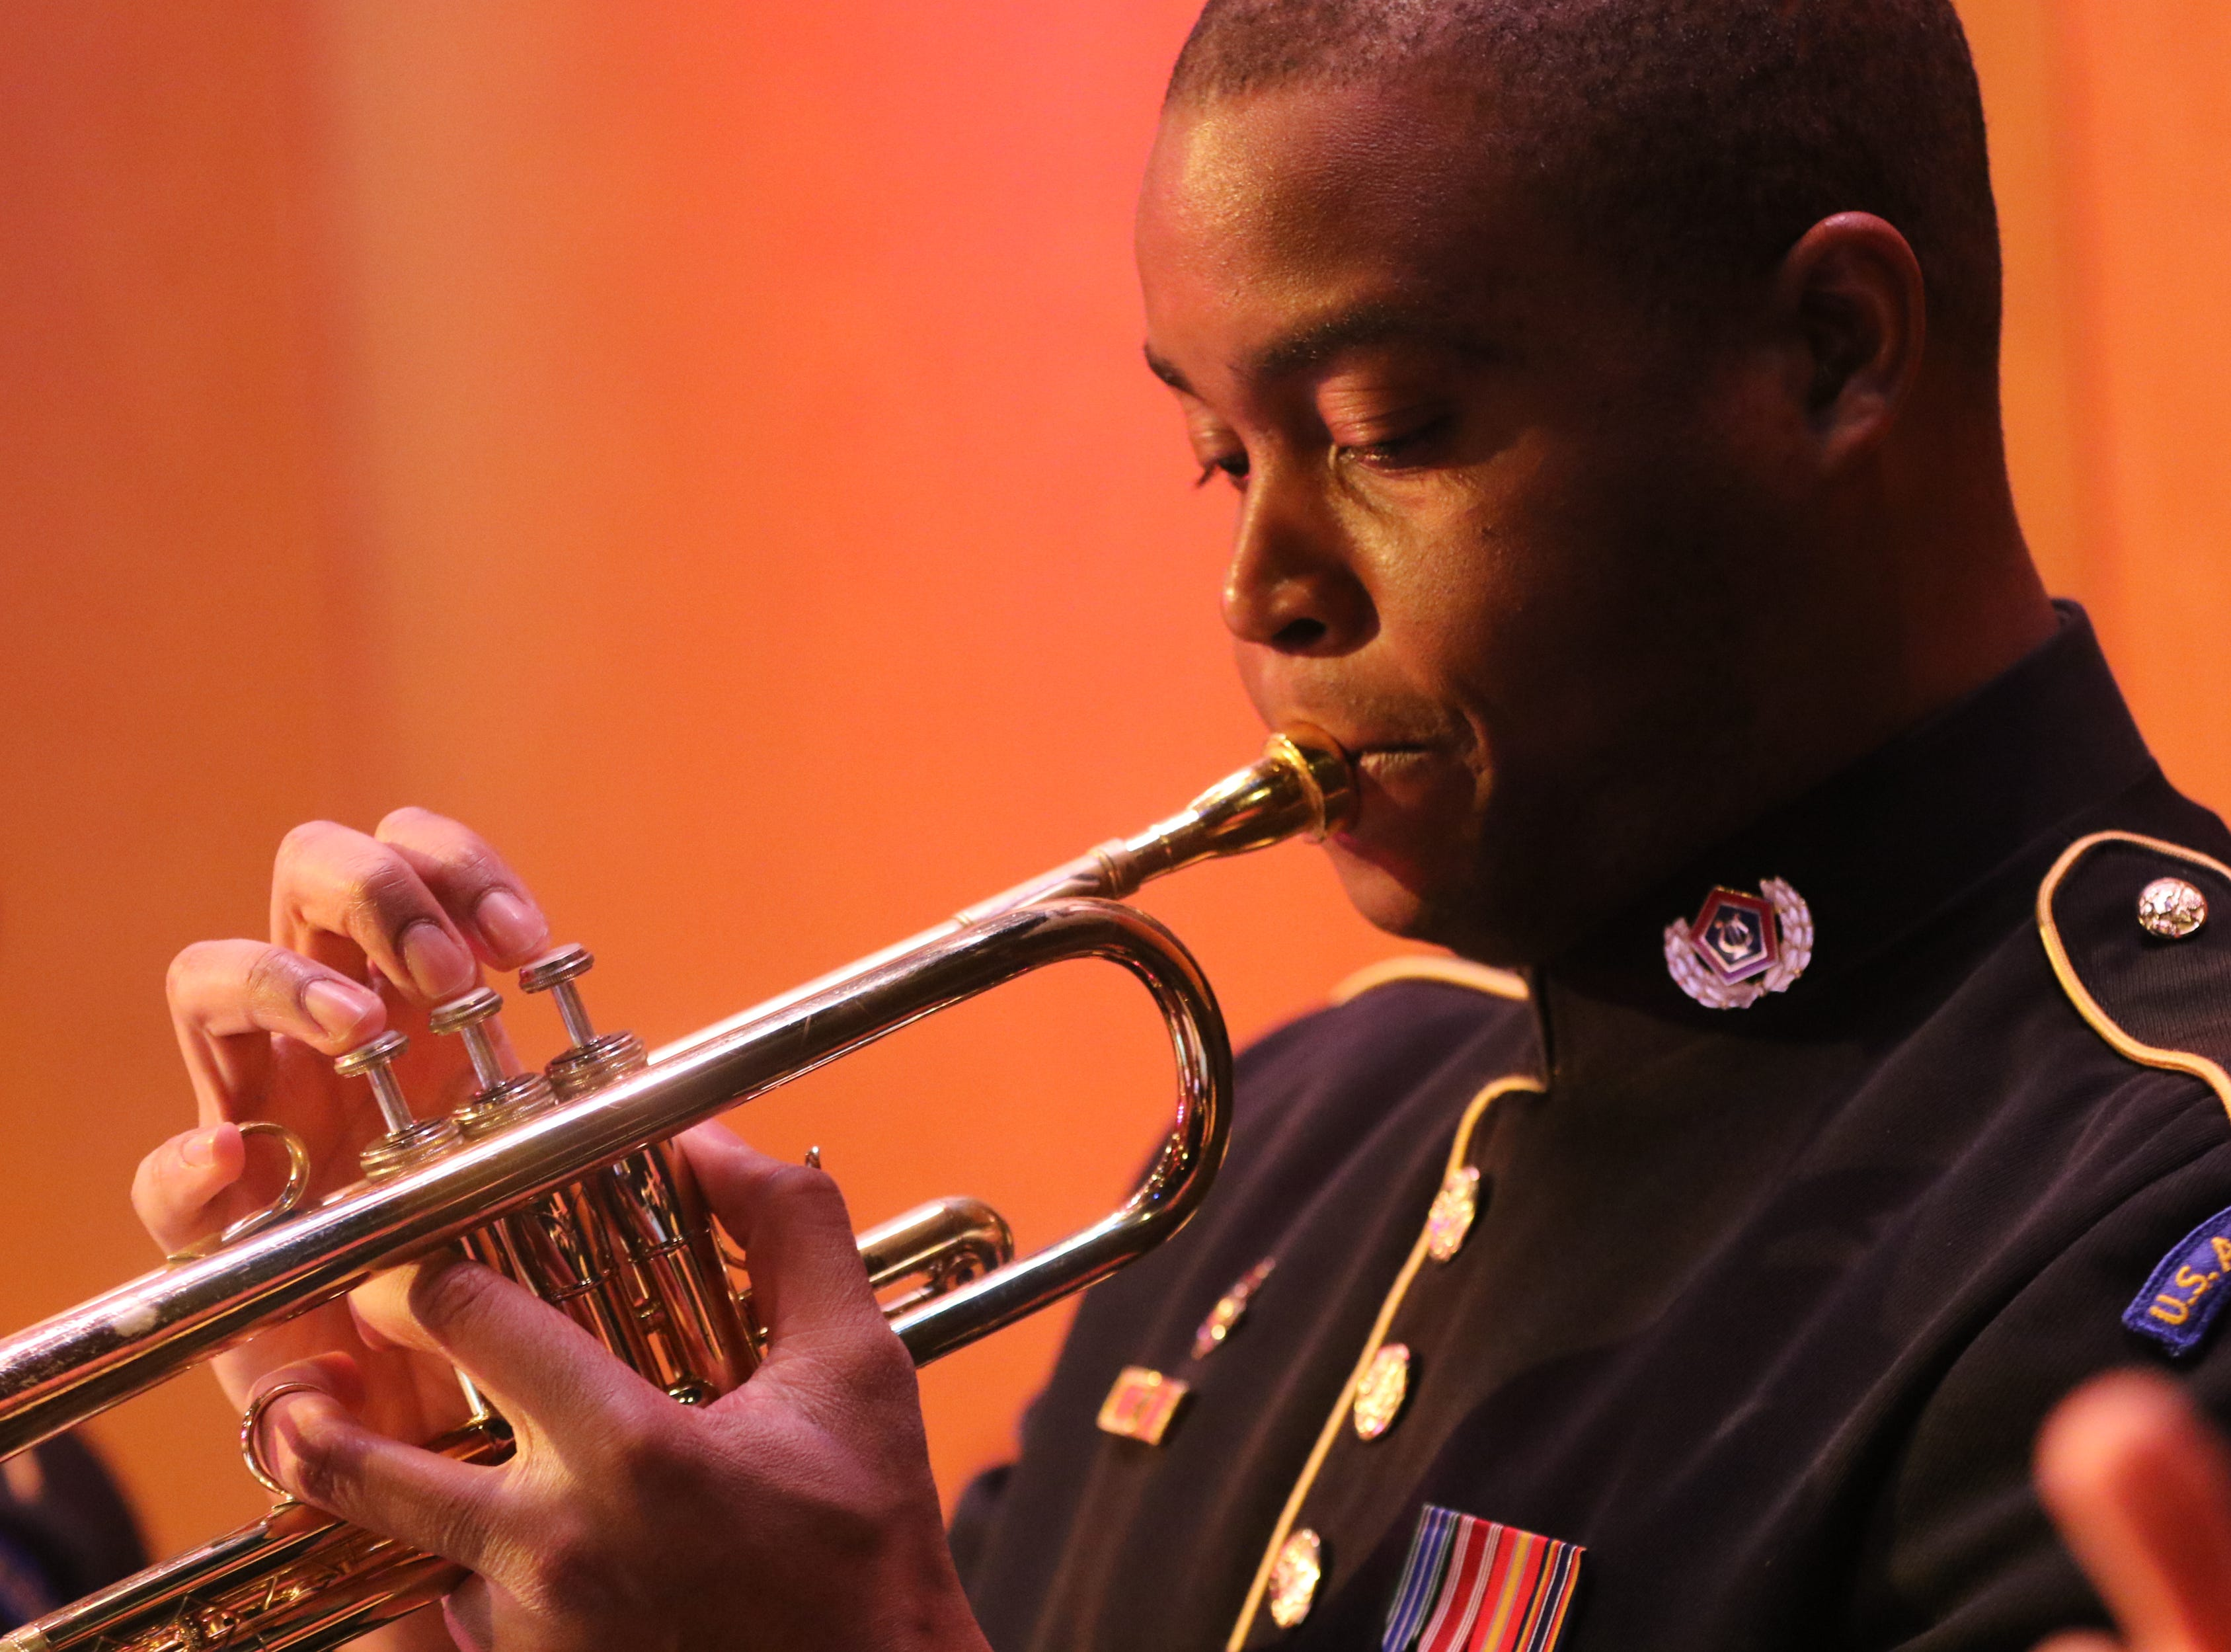 Sgt. First Class Thomas plays the trumpet, in Wayne.  The United States Army Jazz Ambassadors Field Band performed at Wayne Hills High School, Thursday, March 21, 2019.  This was the eleventh day of their tour, which lasts more than a month.